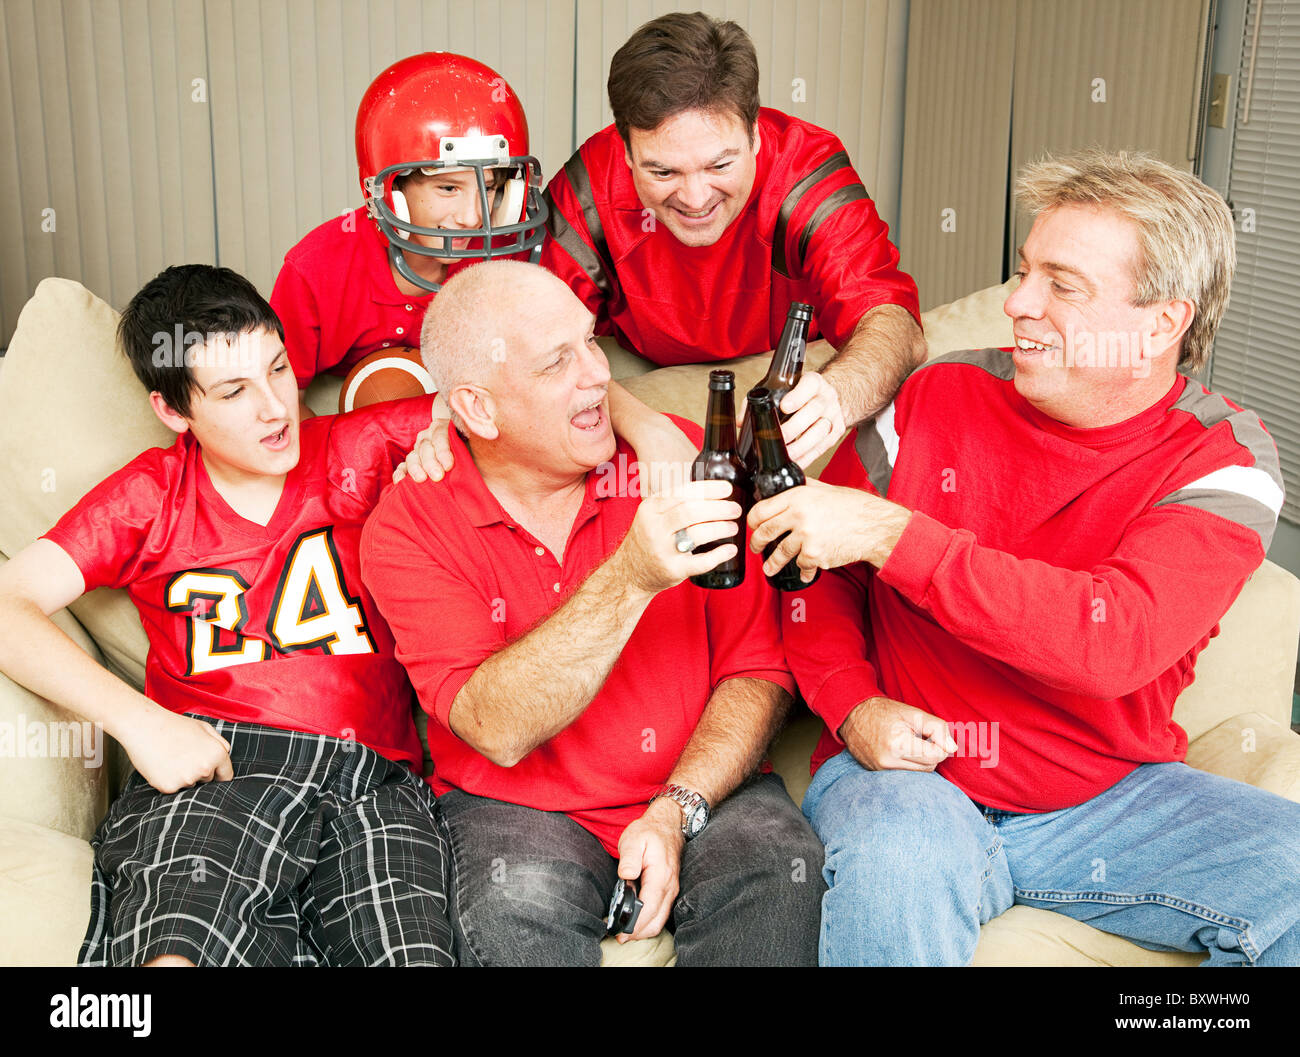 Superbowl football fans toasting success with their beer bottles.  - Stock Image